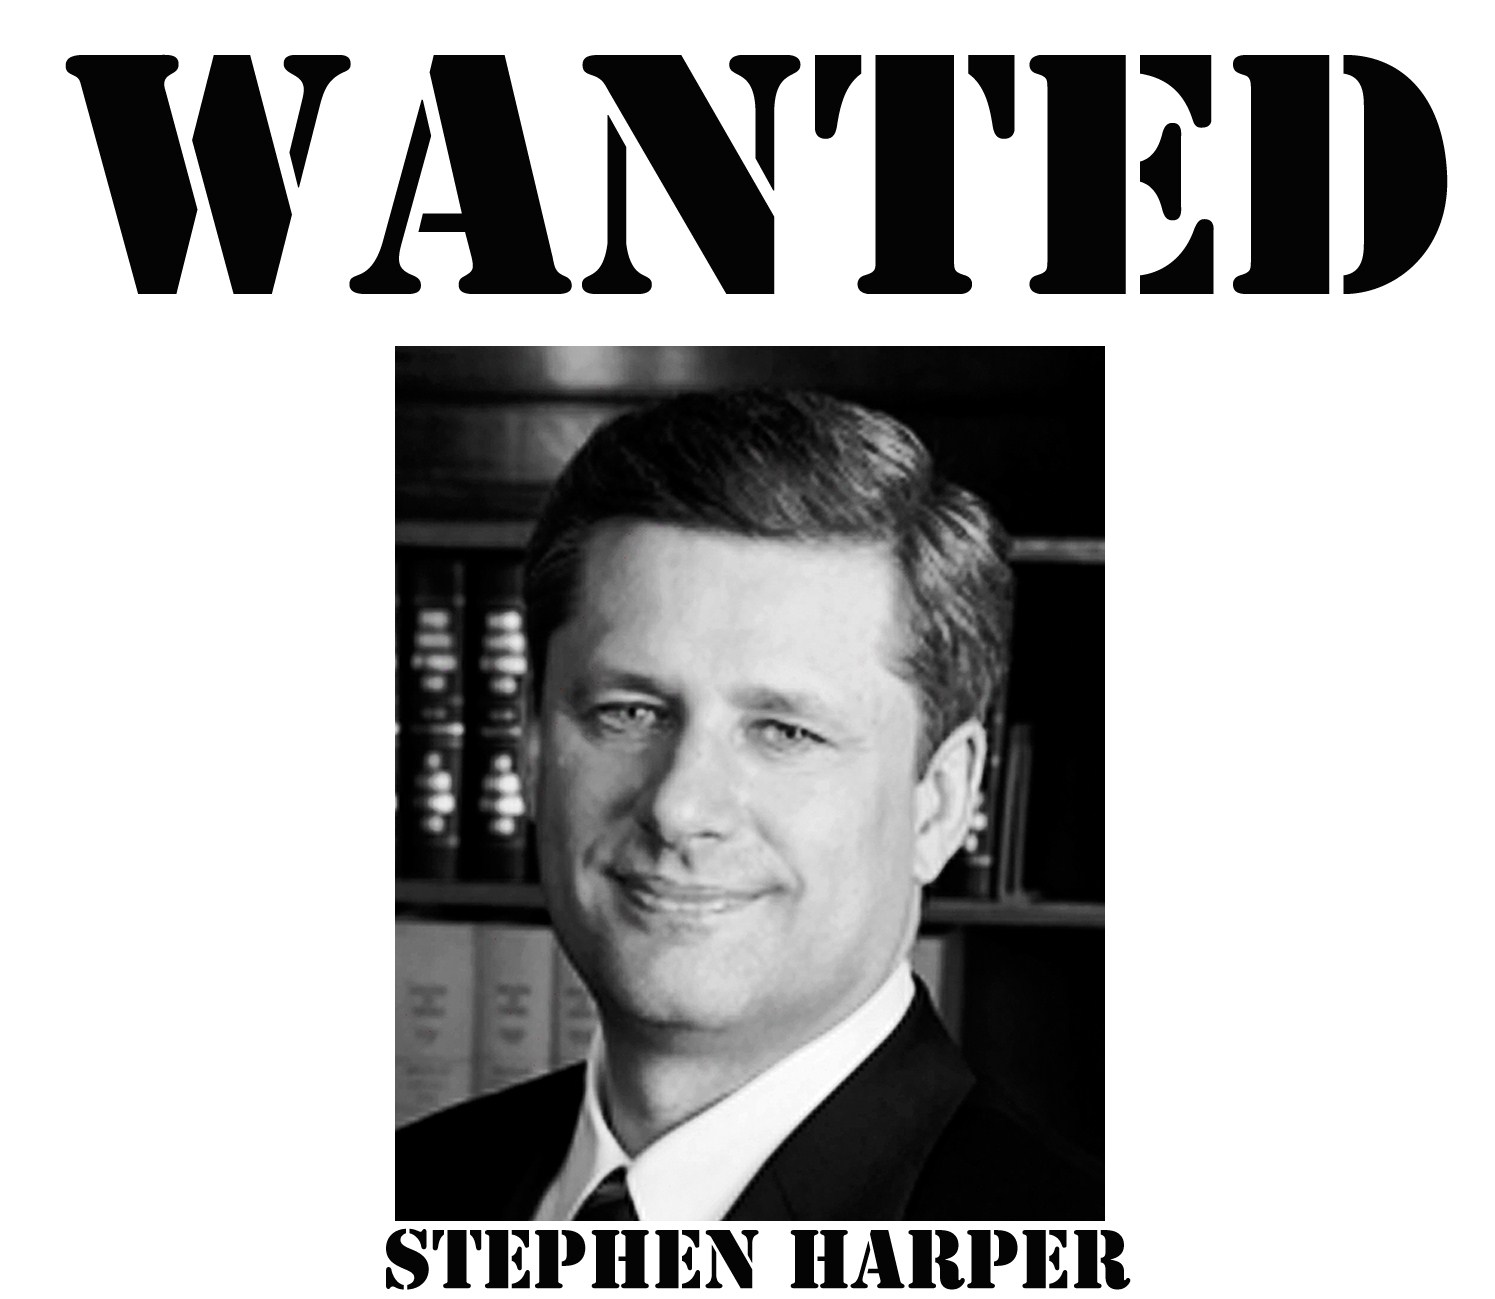 http://reactionismwatch.files.wordpress.com/2010/06/harper-wanted-2.jpg